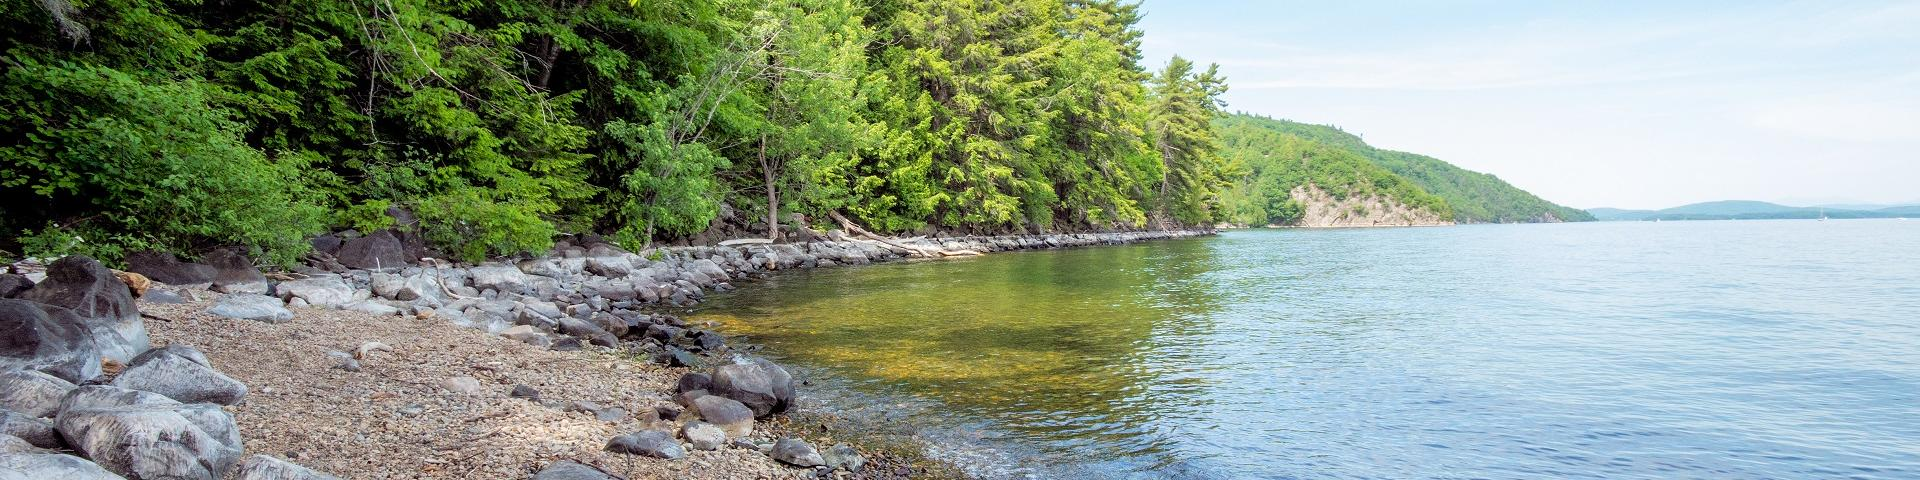 Image of bay in Lake Champlain